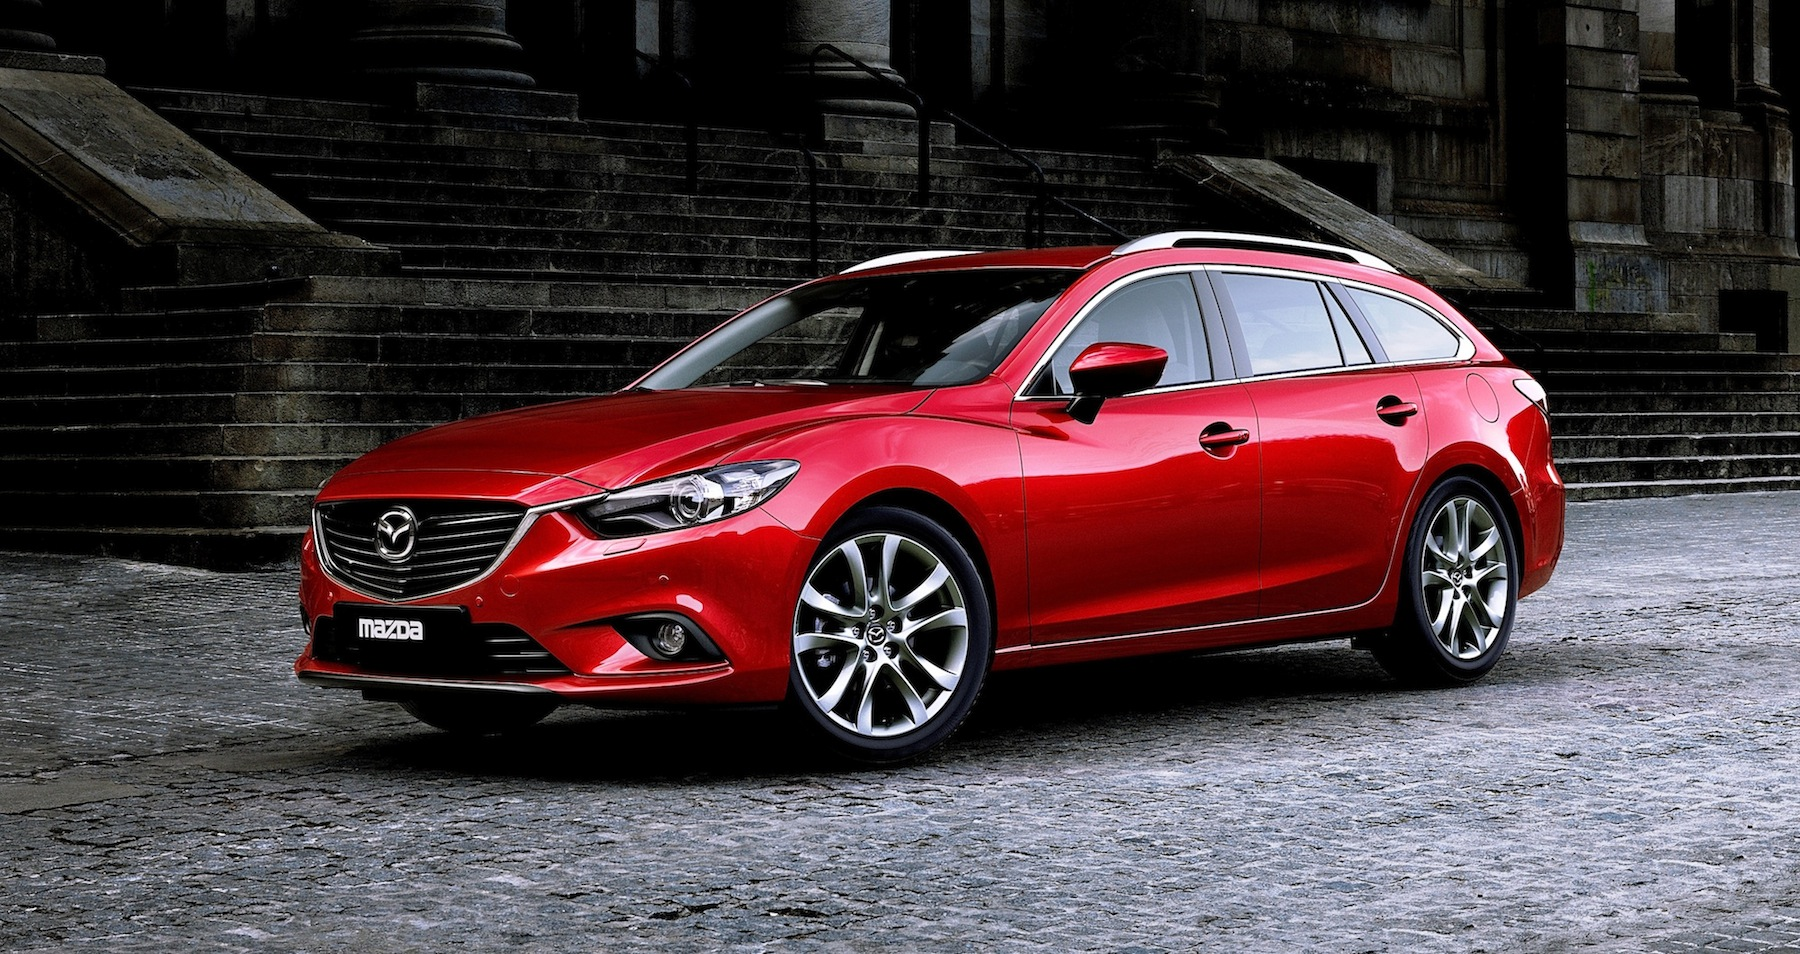 2014 mazda mazda6 reviews pictures and prices us news autos post. Black Bedroom Furniture Sets. Home Design Ideas